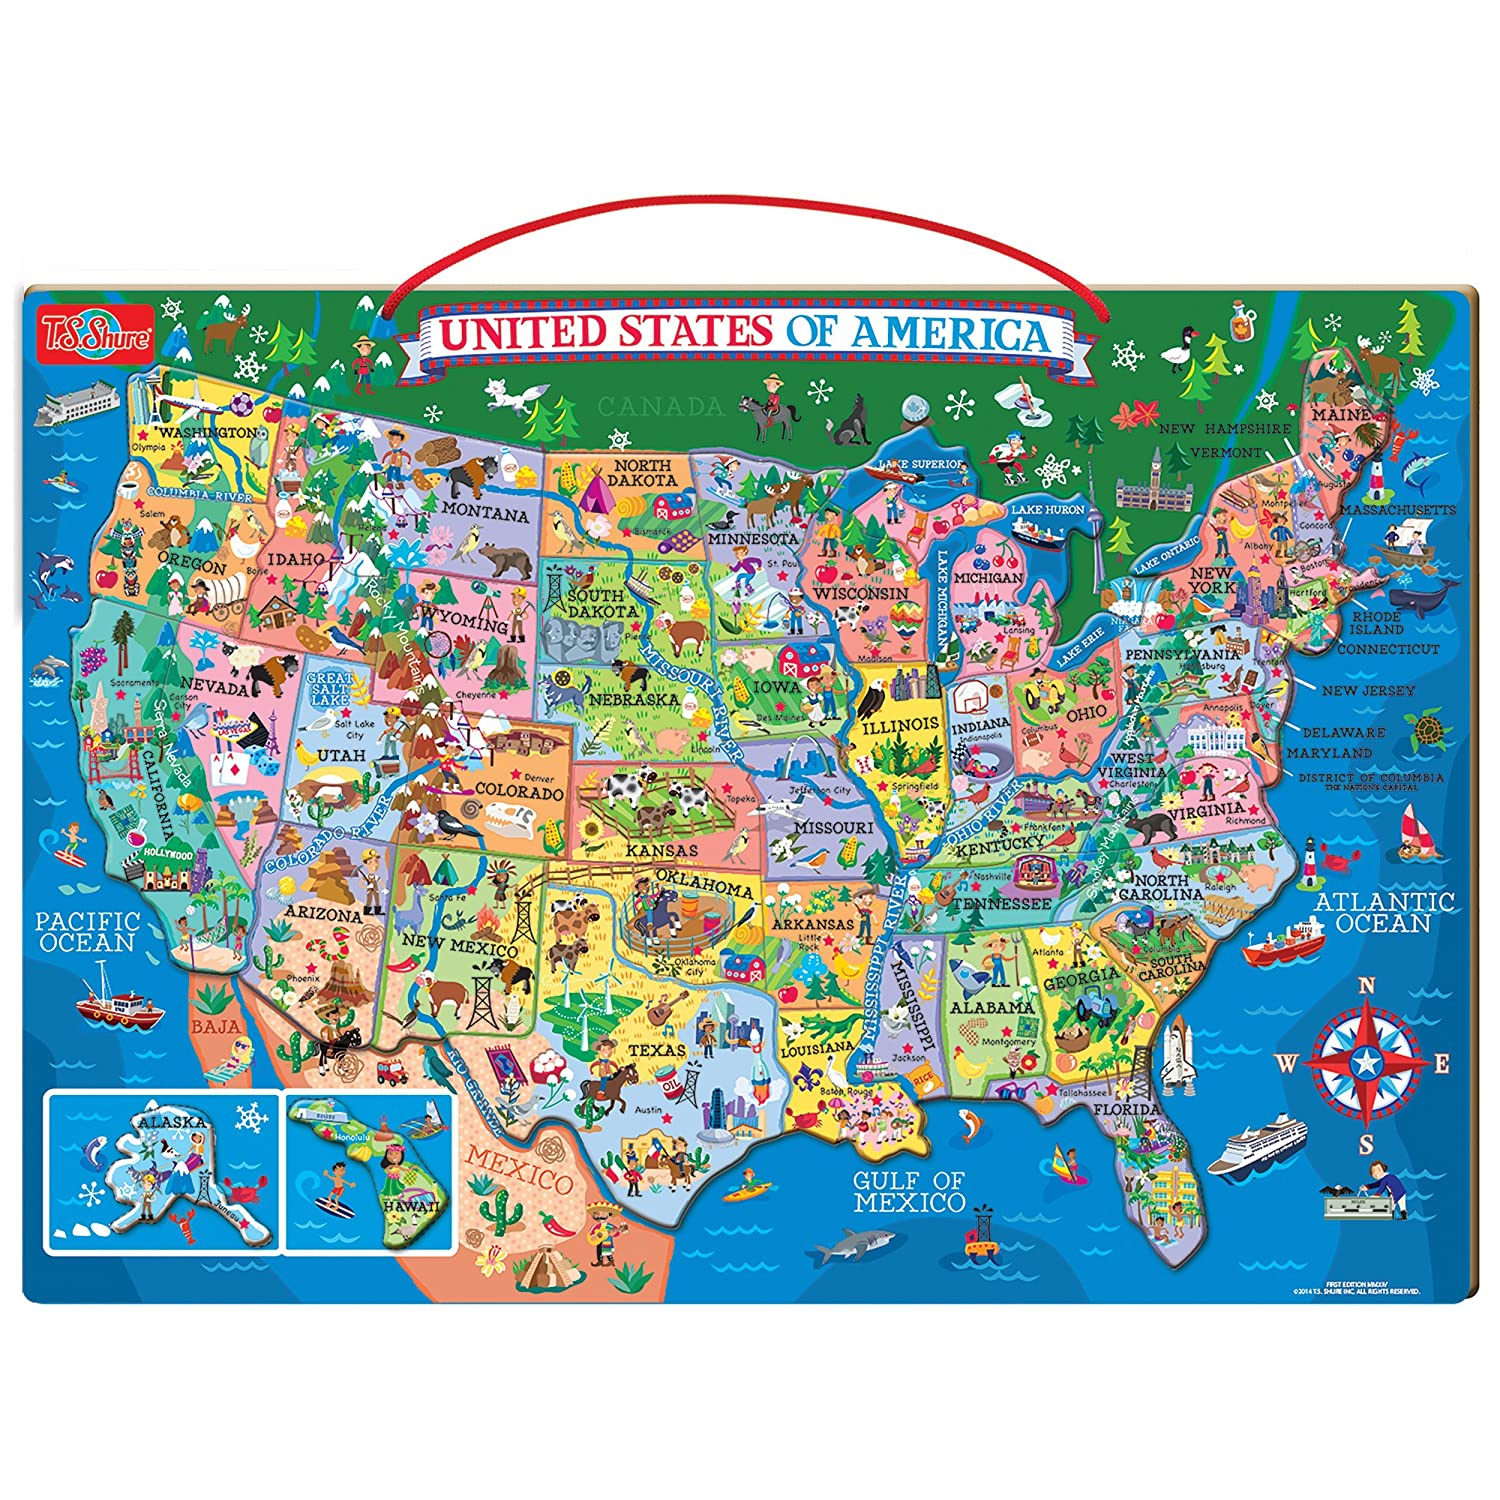 Amazoncom TS Shure Wooden Magnetic Map Of The USA Puzzle Toys - Us map and oceans